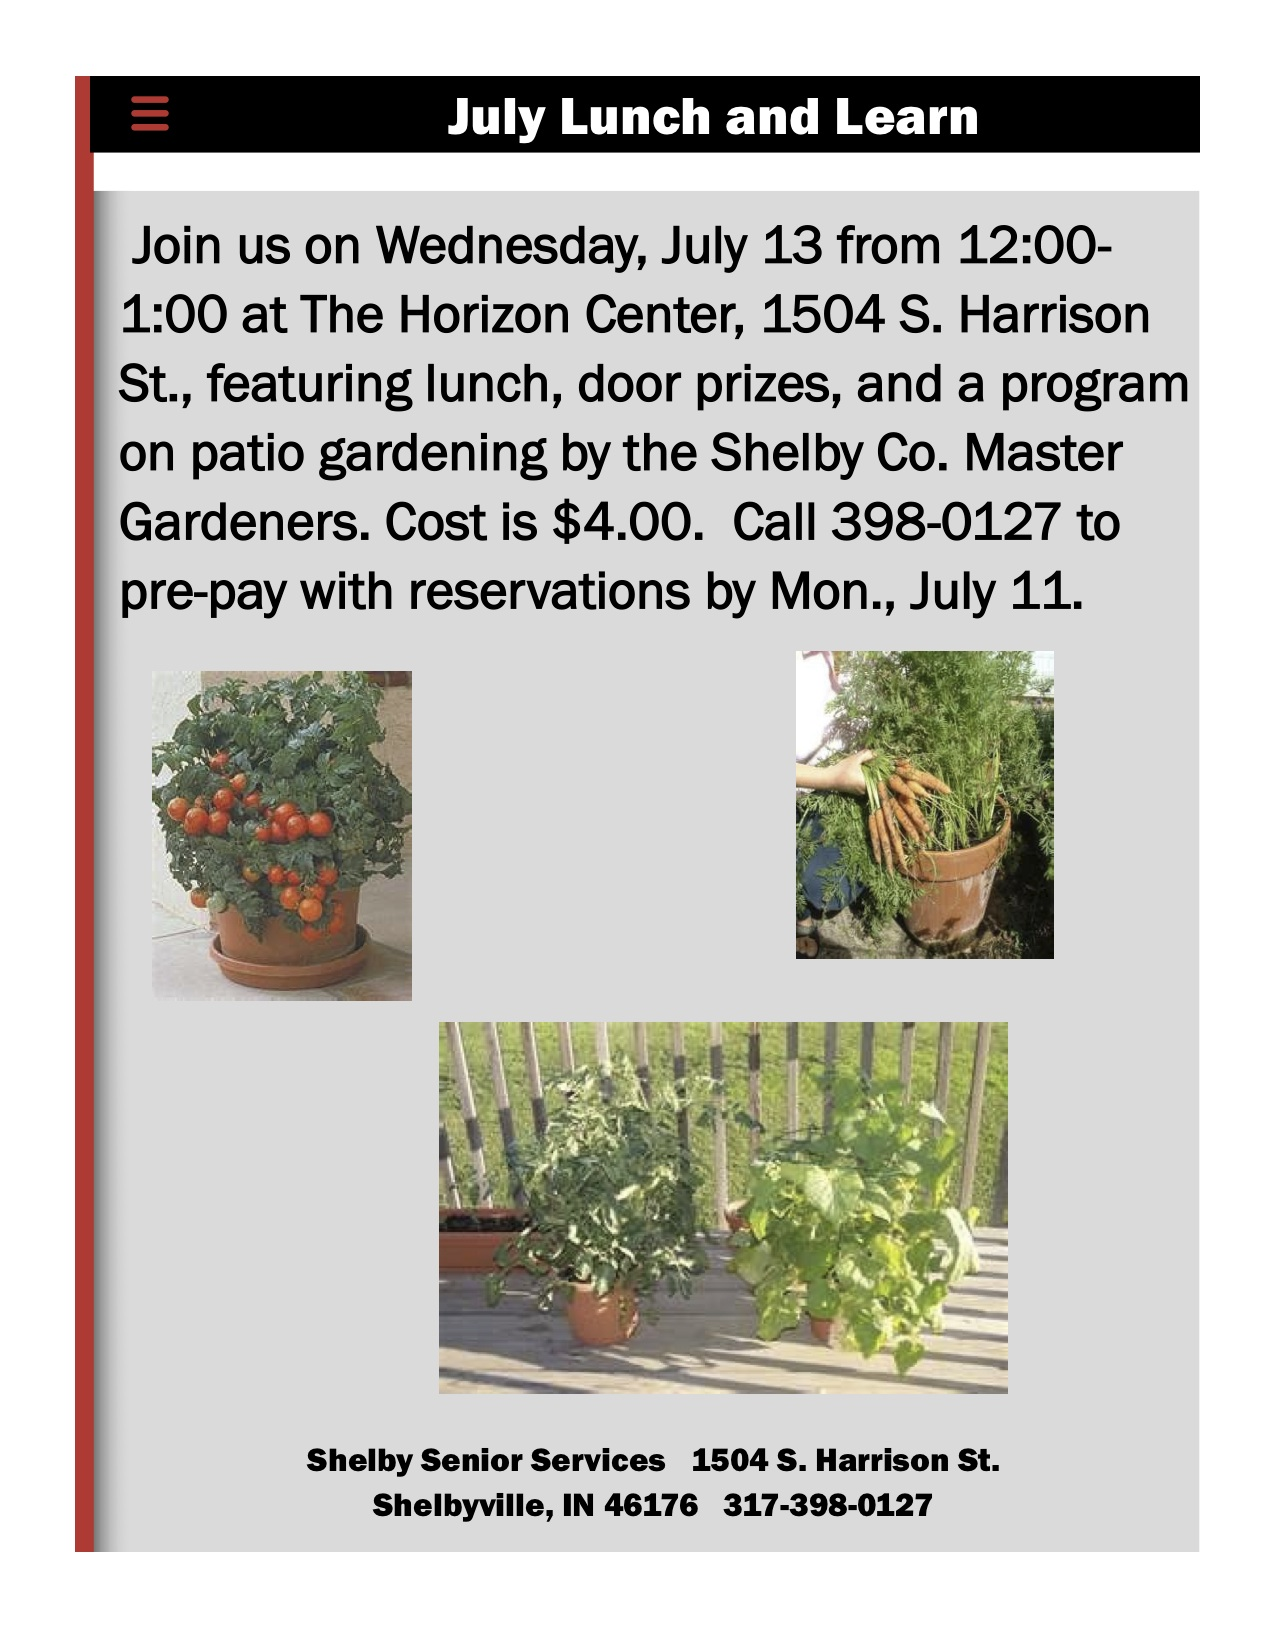 July Lunch and Learn flier Shelby Senior Center Shelbyville, Shelby County, Indiana